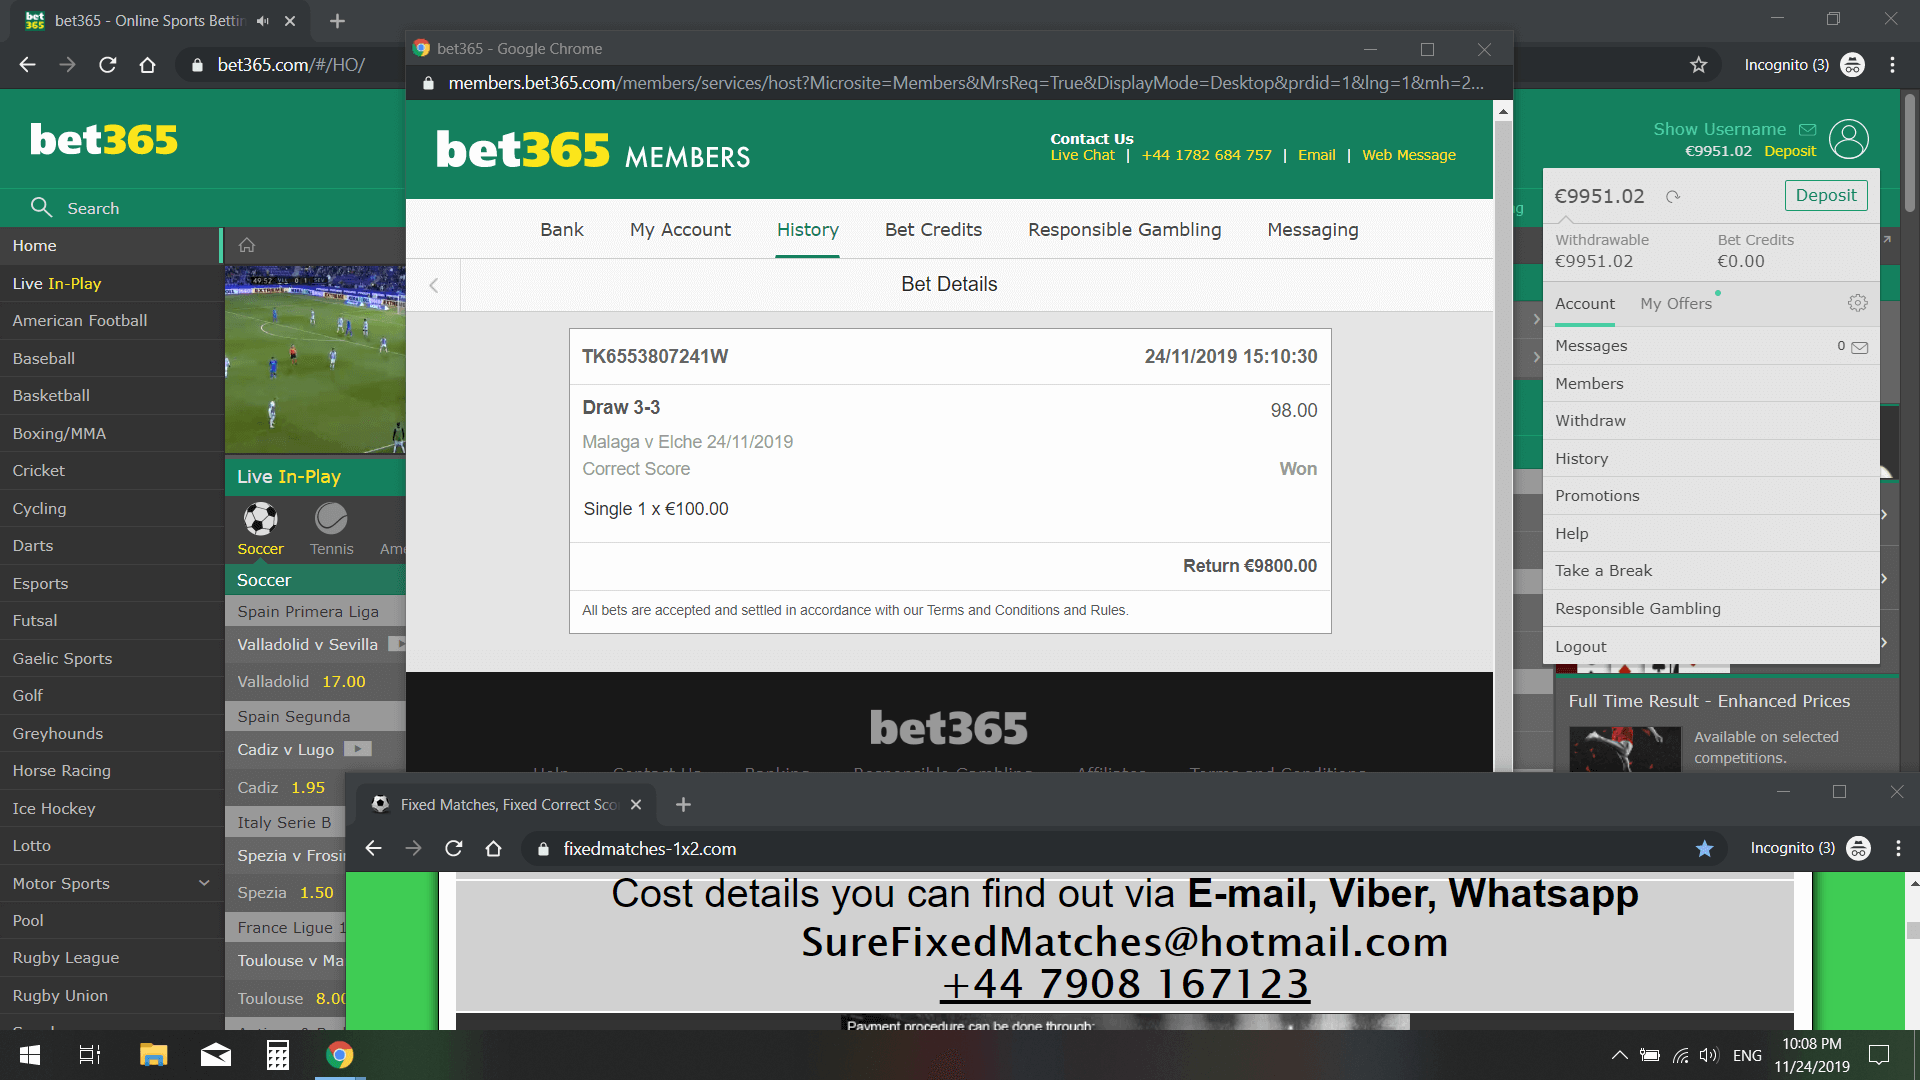 fixed correct score won 98 odds